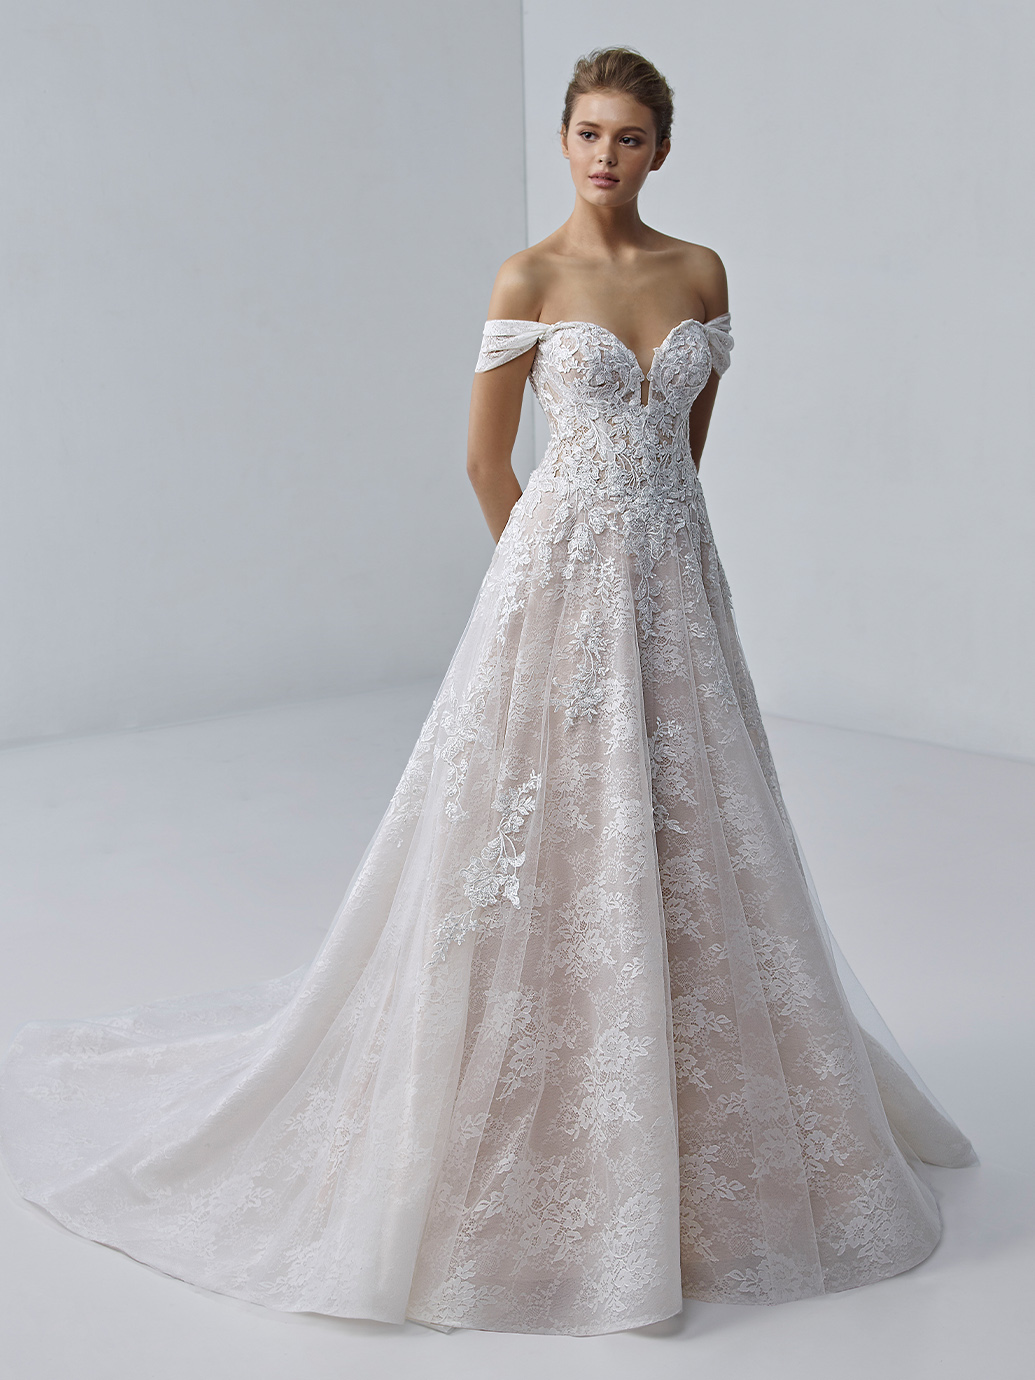 étoile-by-enzoani-2021-Dress-Finder-Esmee